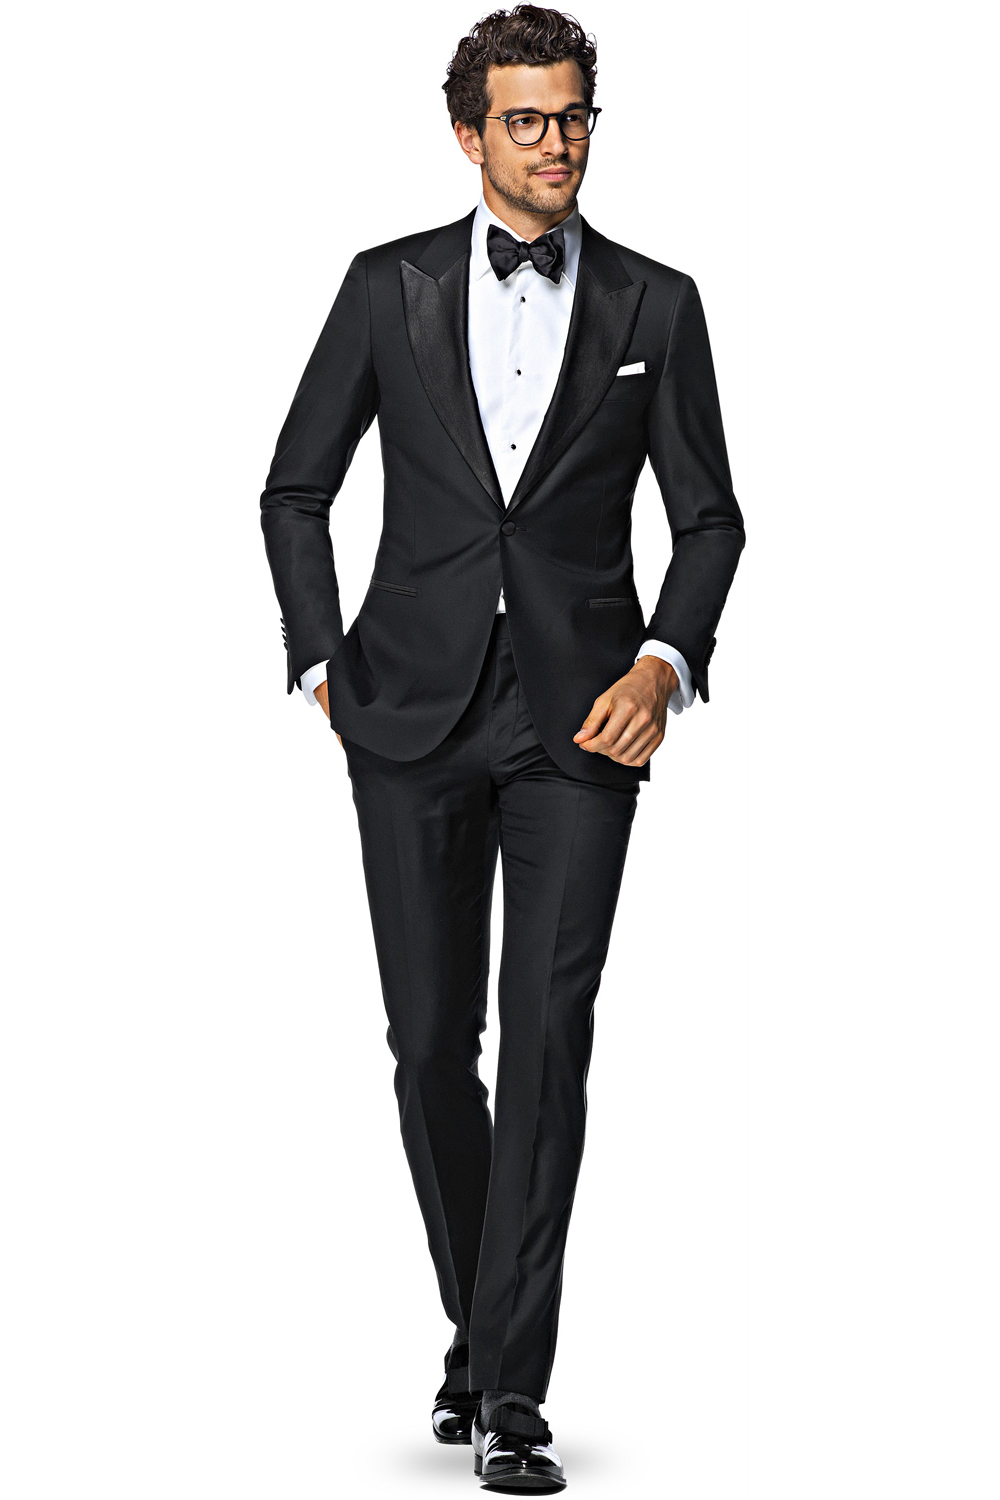 How to Dress for Any New Year's Eve Celebration